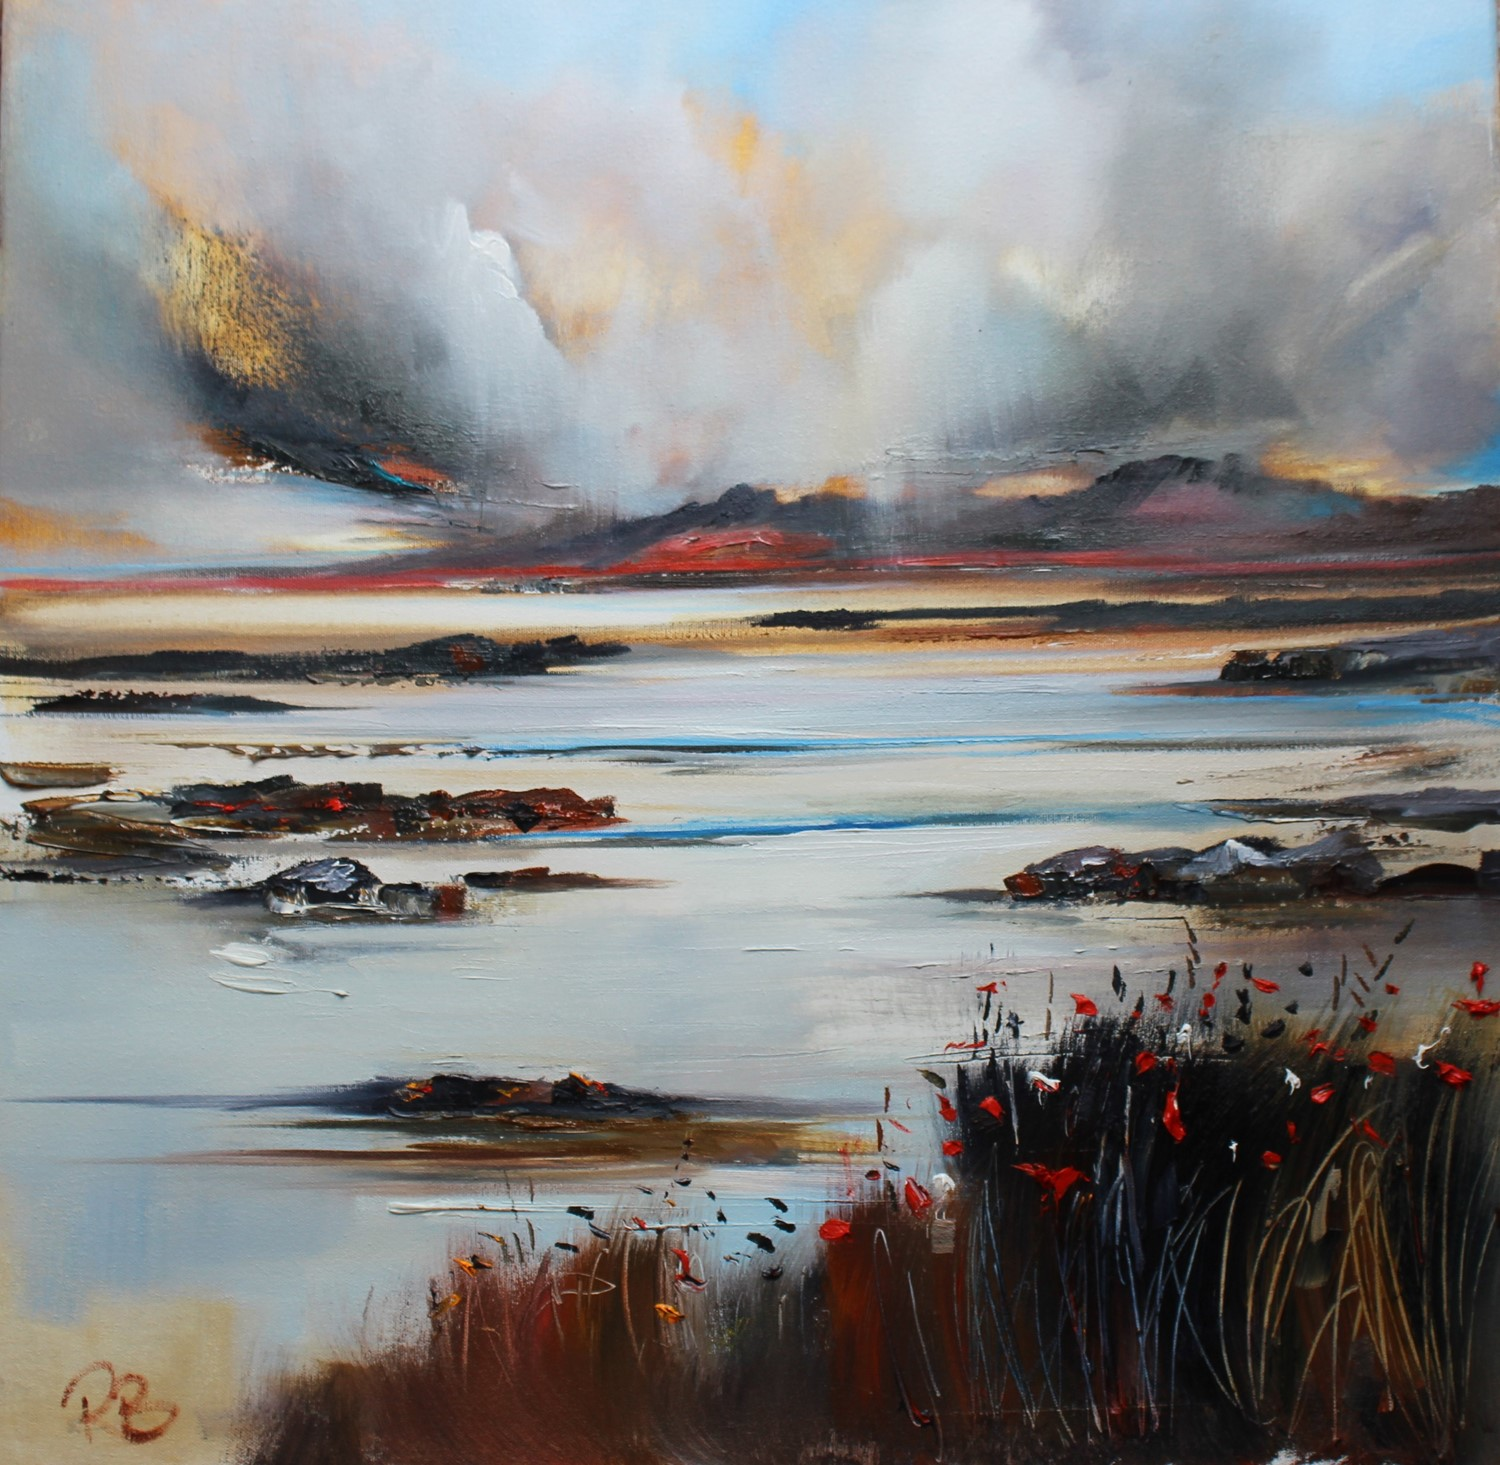 'Dramatic Light' by artist Rosanne Barr